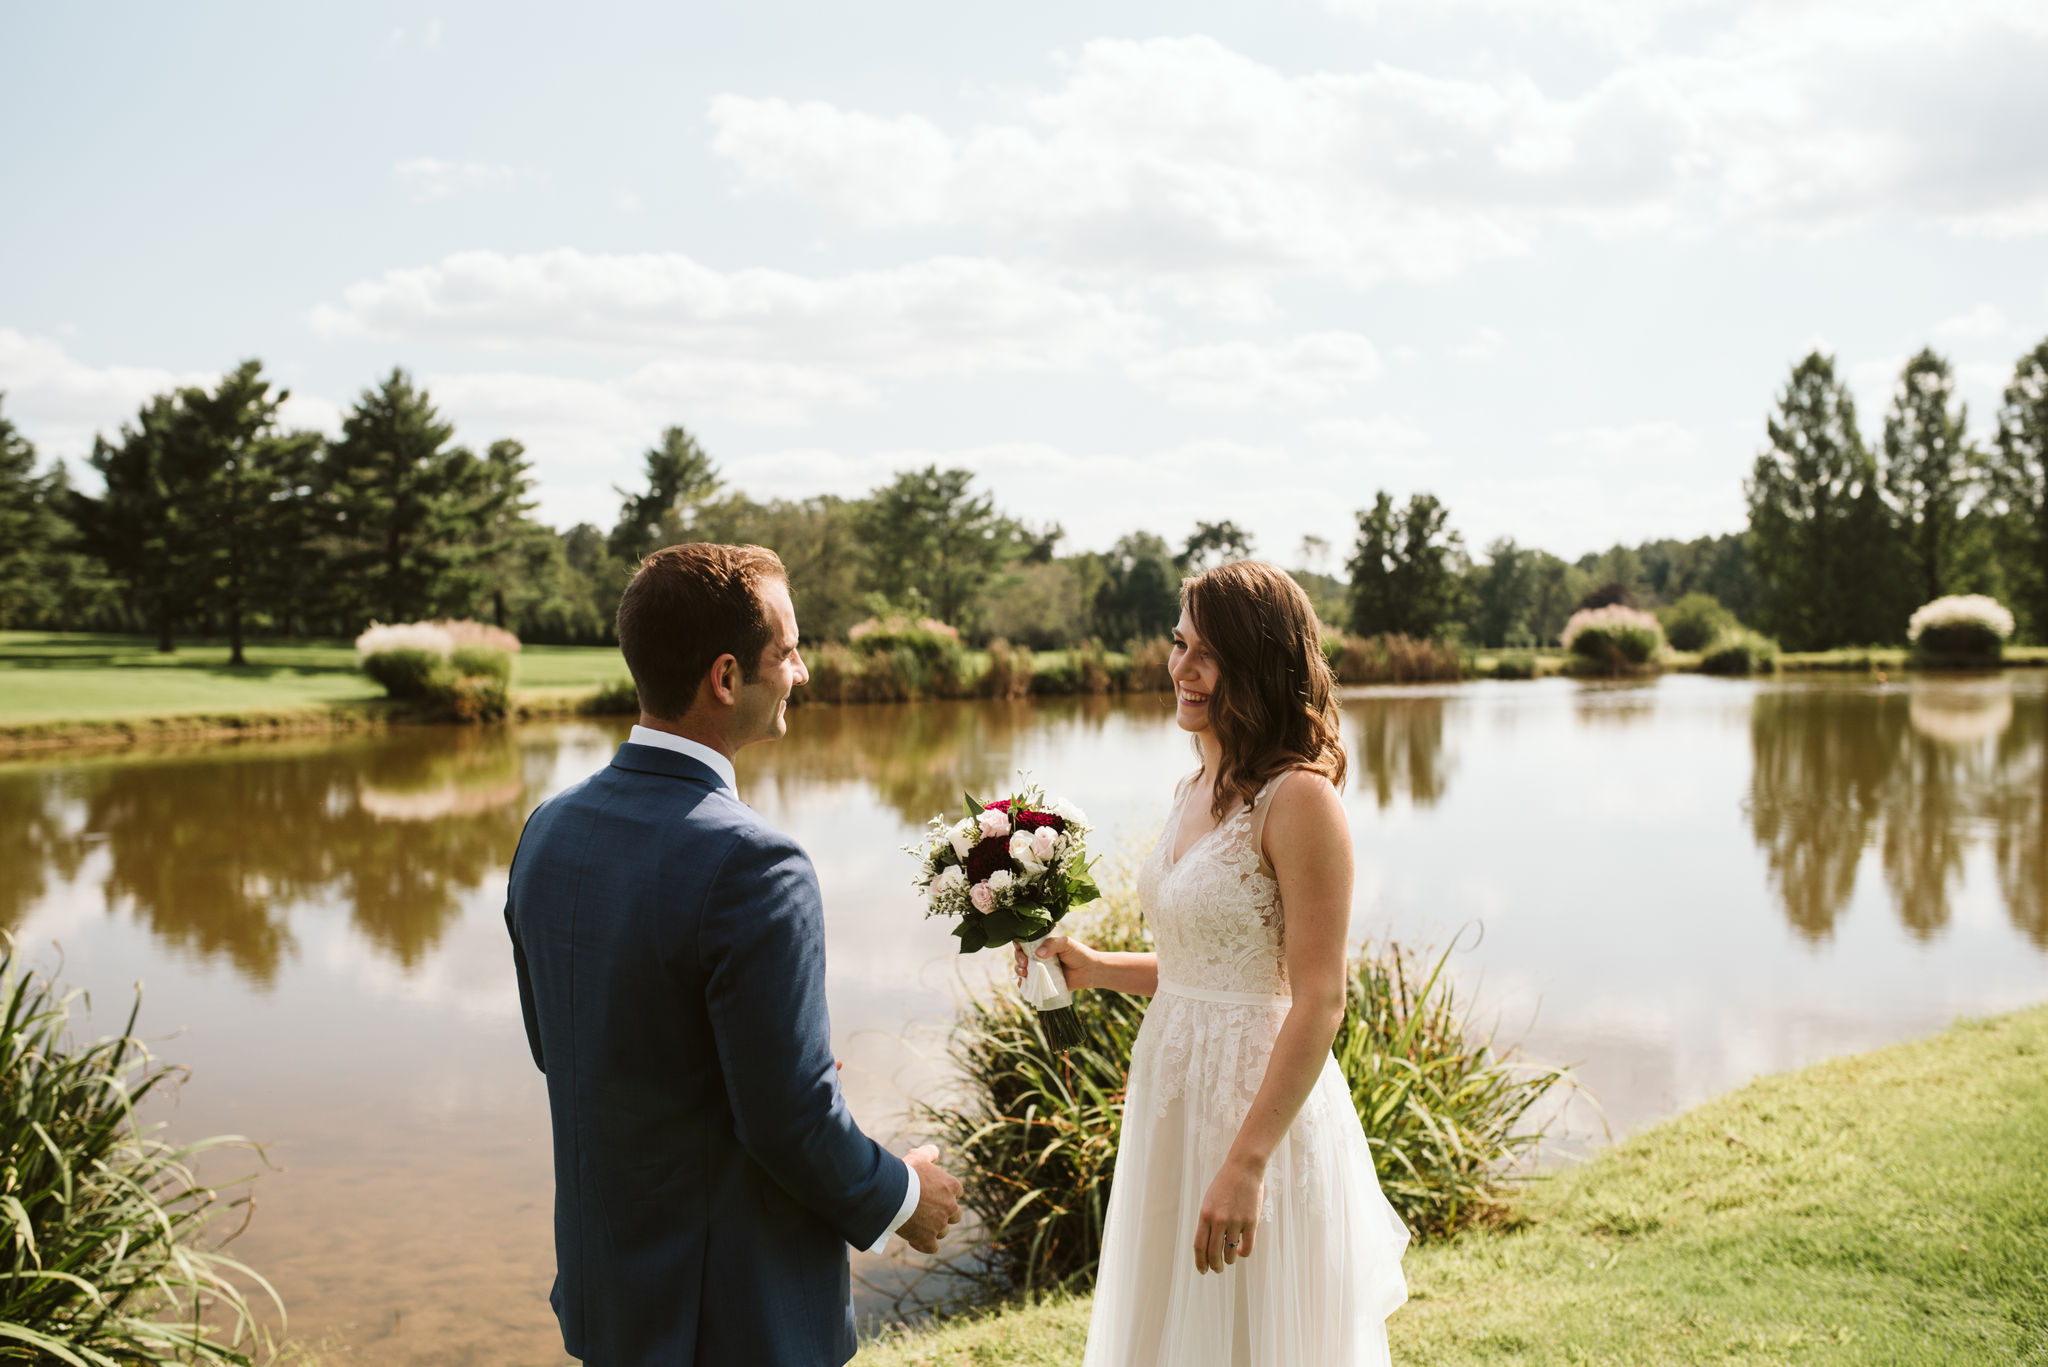 Phoenix Maryland, Baltimore Wedding Photographer, Eagle's Nest Country Club, Classic, Romantic, Spring, BHLDN Dress, First Look, Dundalk Florist, Bride and Groom Outside by Water